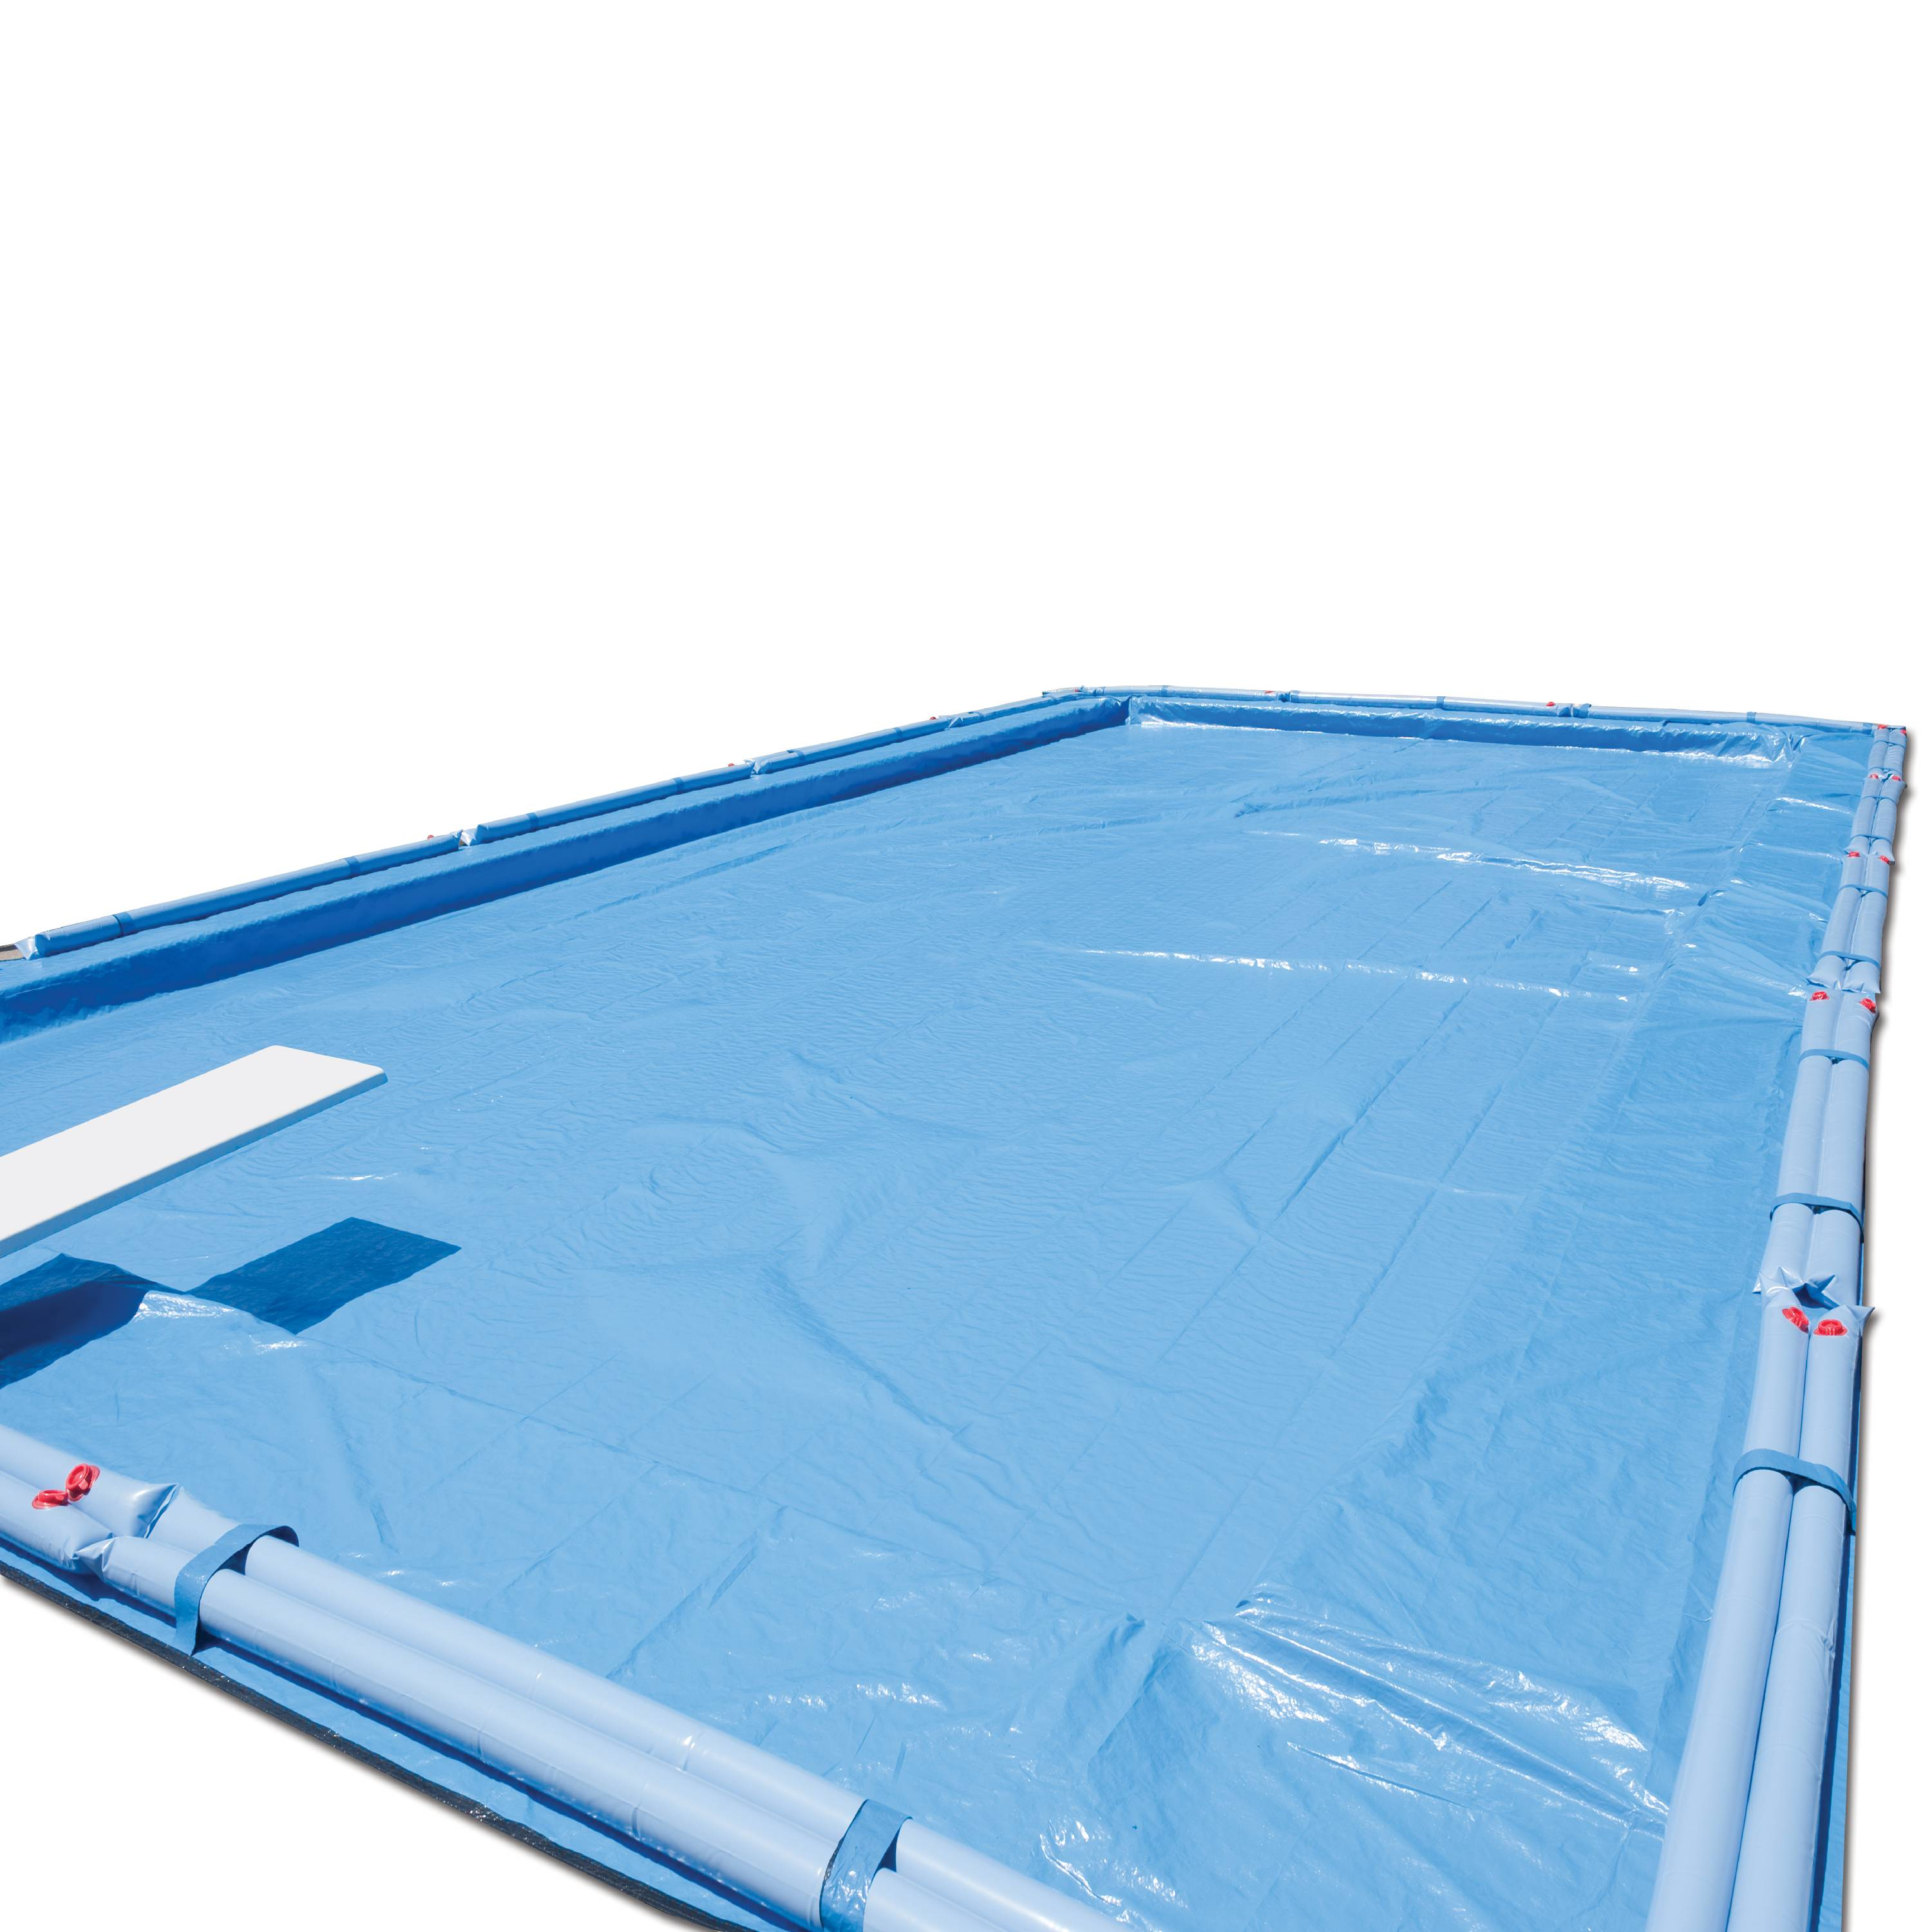 12-Year 12 x 24 ft. Rectangle Ultimate In Ground Pool Winter Cover